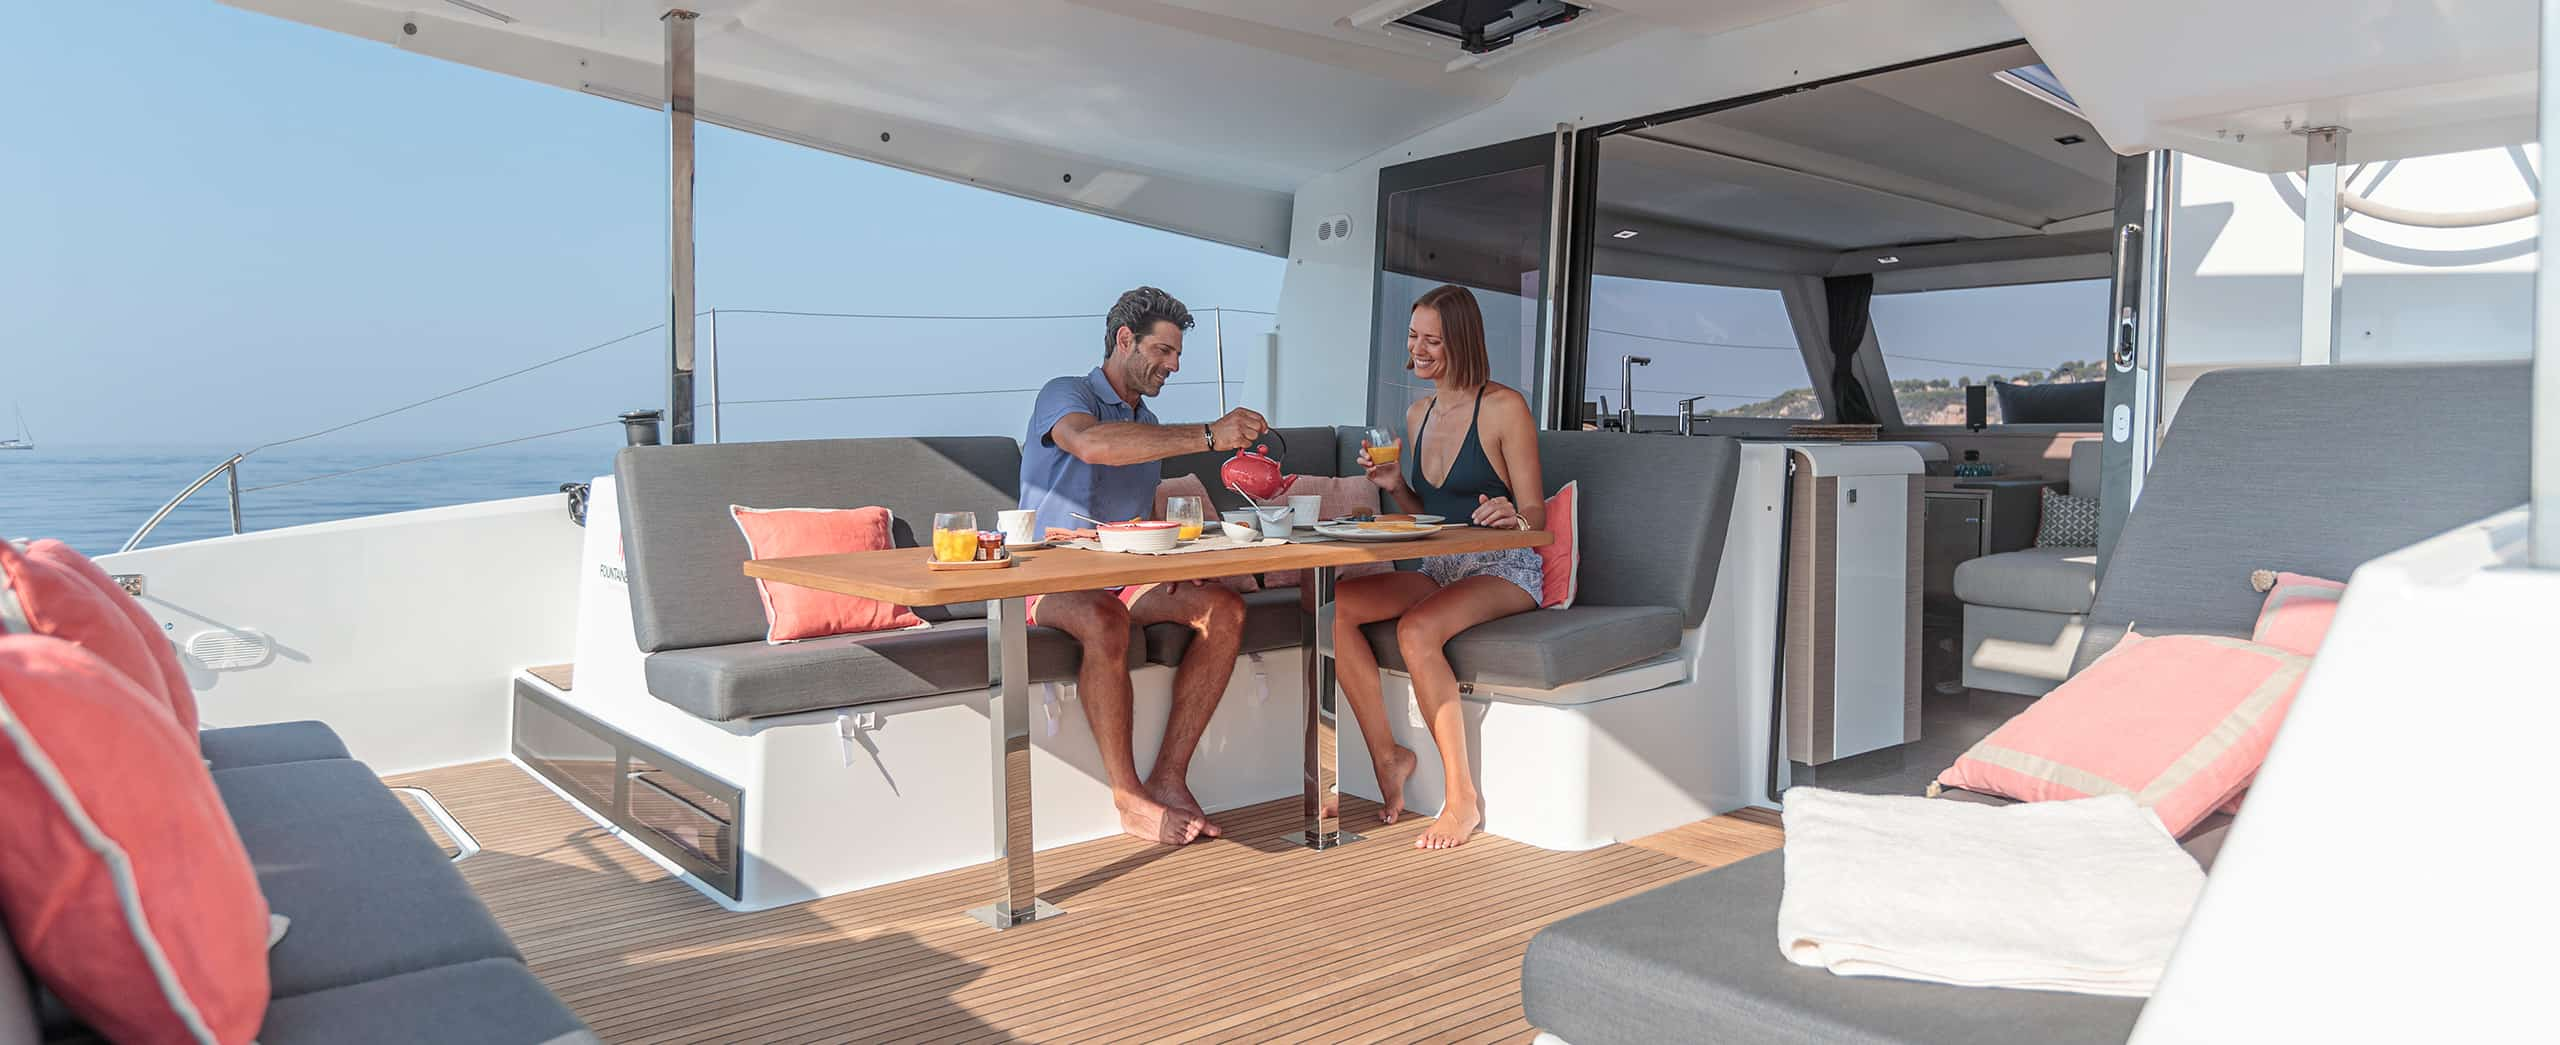 A man and woman having lunch on the deck of a yacht